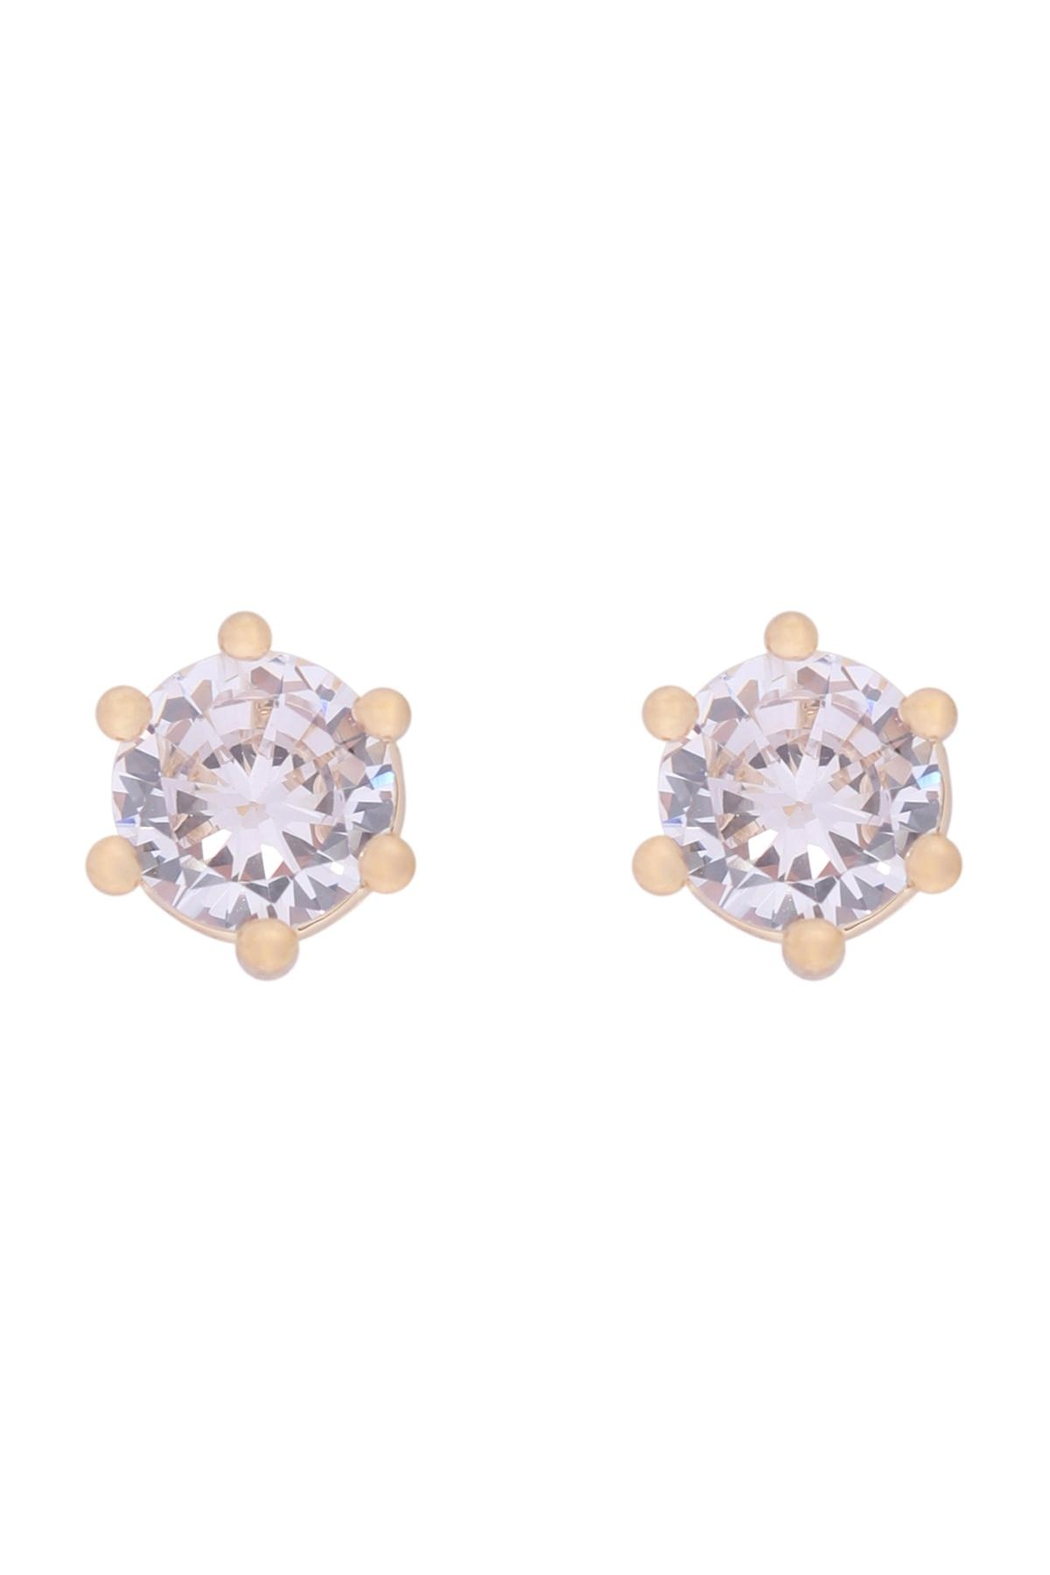 Riah Fashion 5mm-Cubic-Zirconia-Stud-Earrings - Main Image